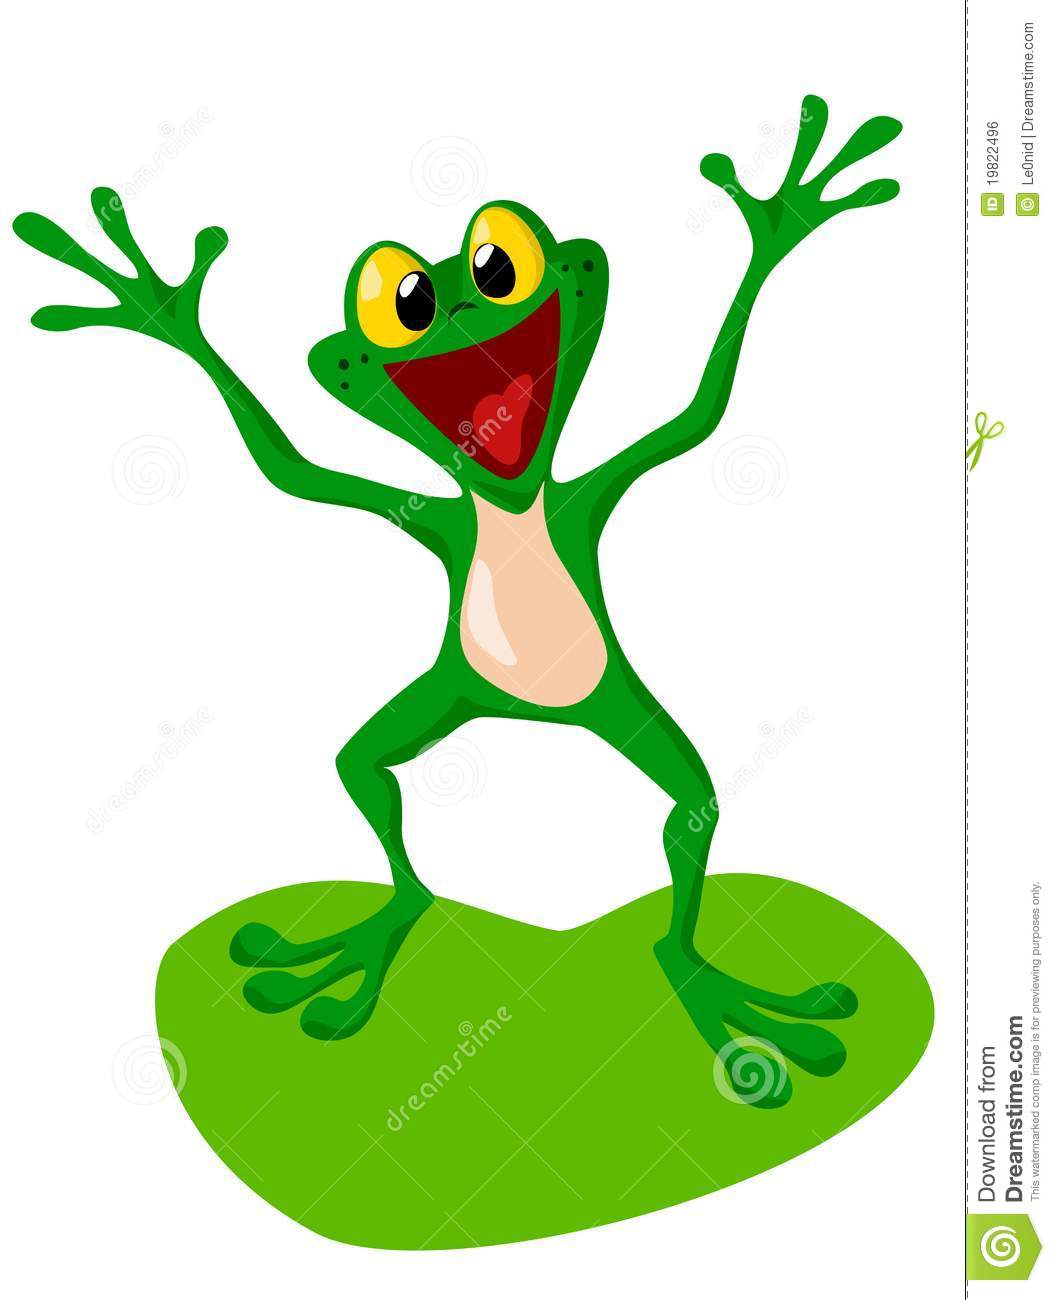 happy frog royalty free stock image image 19822496